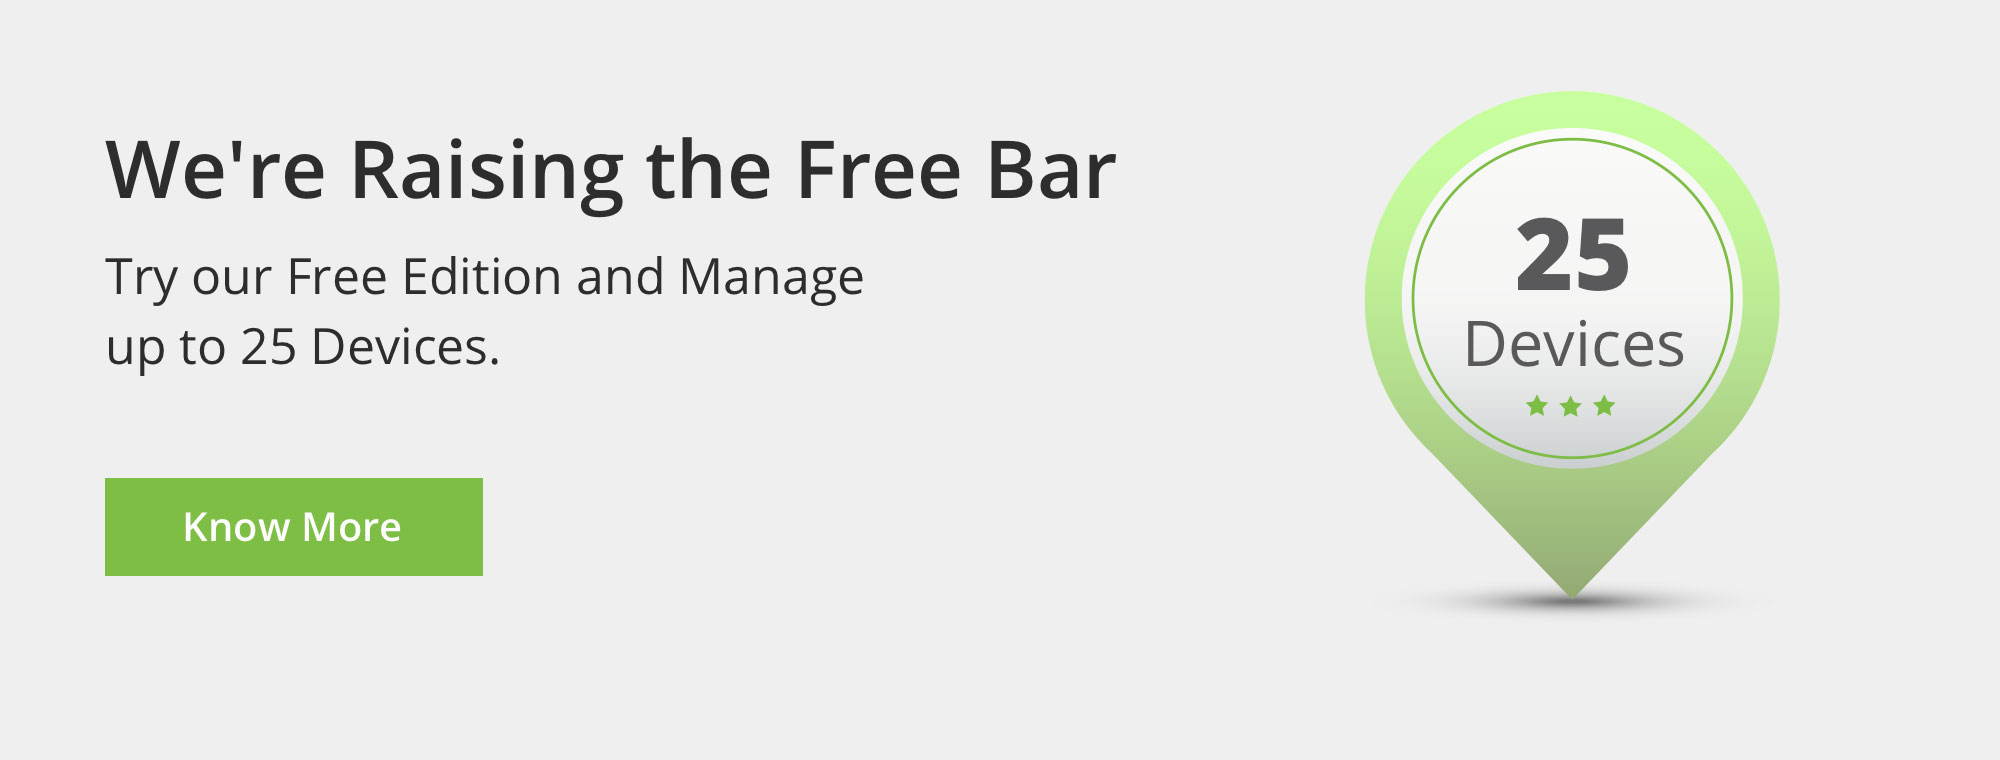 Now Manage your Mobile Devices for Free.